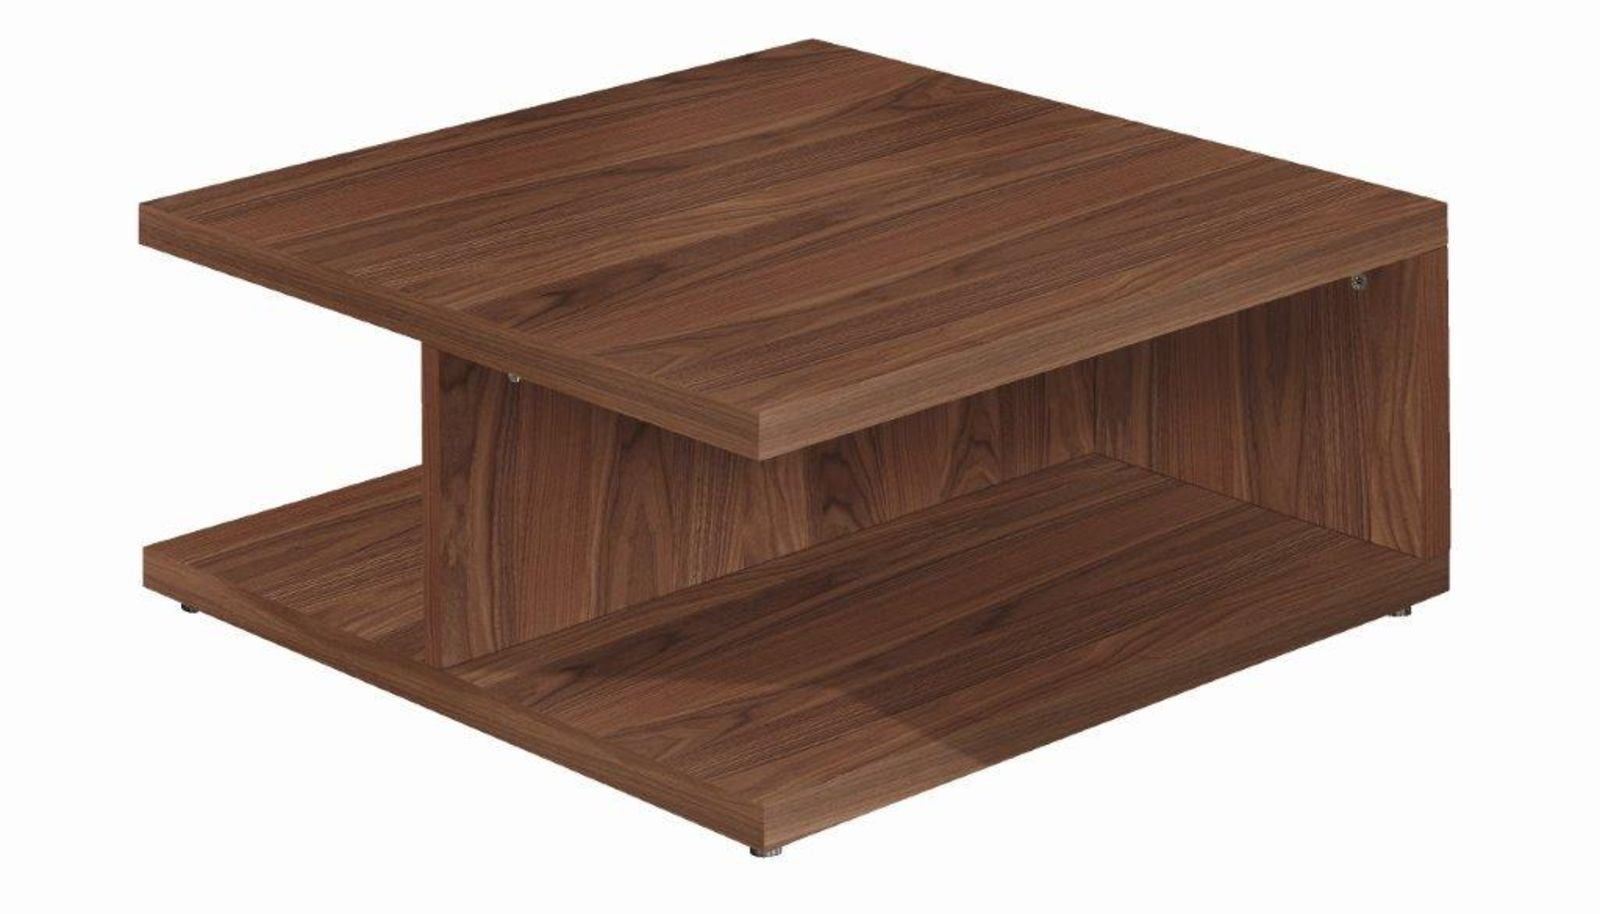 Contemporary coffee table walnut lacquered glass square contemporary coffee table walnut lacquered glass square now geotapseo Gallery